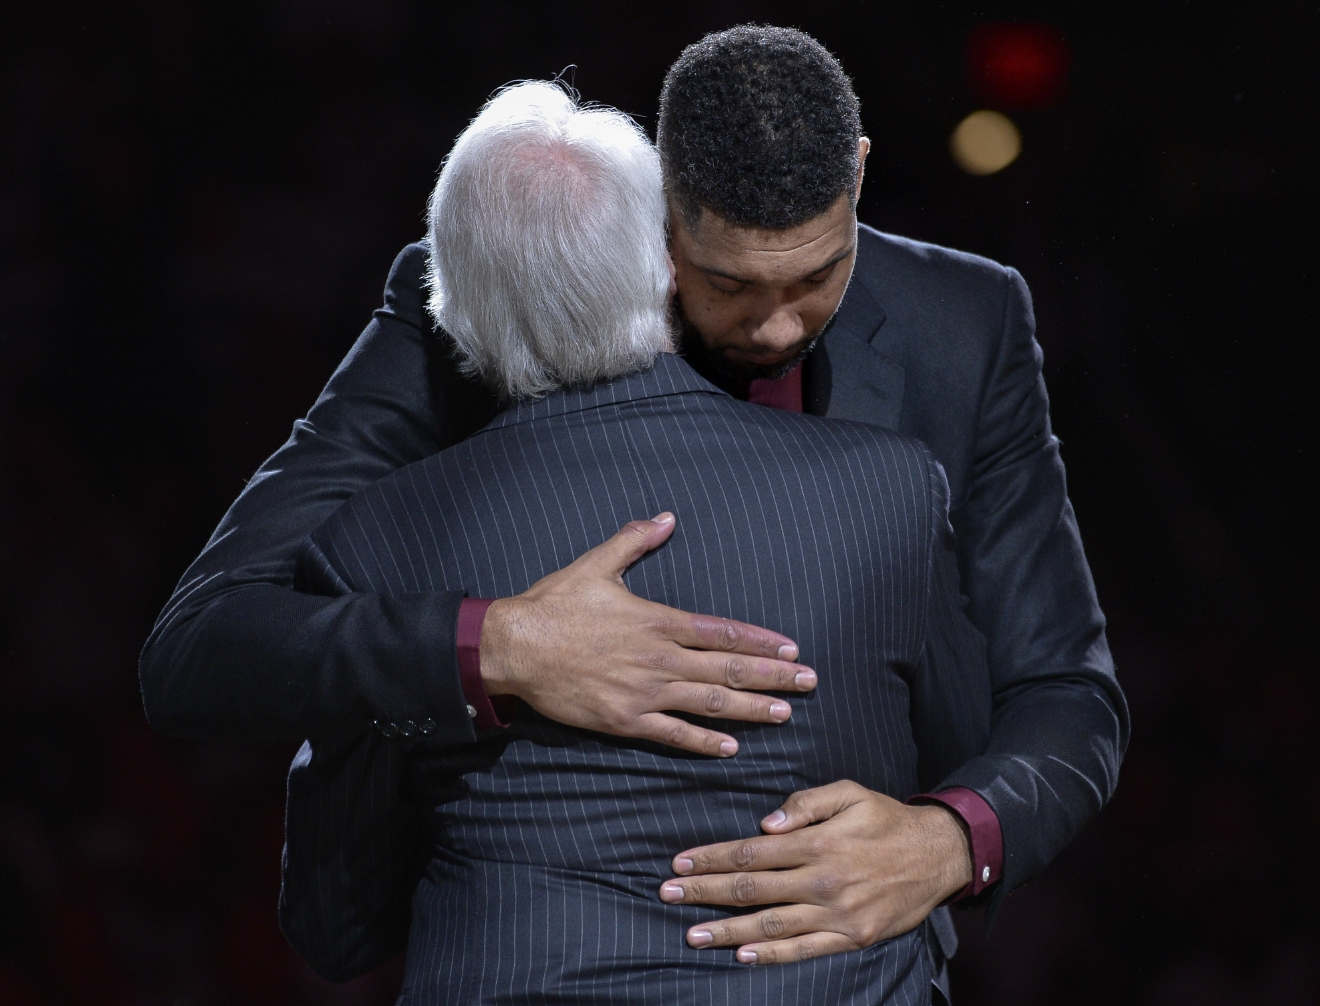 San Antonio Spurs legend Tim Duncan, right, hugs Spurs head coach Gregg Popovich during Duncan's jersey retirement ceremony, Sunday, Dec. 18, 2016, in San Antonio. (AP Photo/Darren Abate)